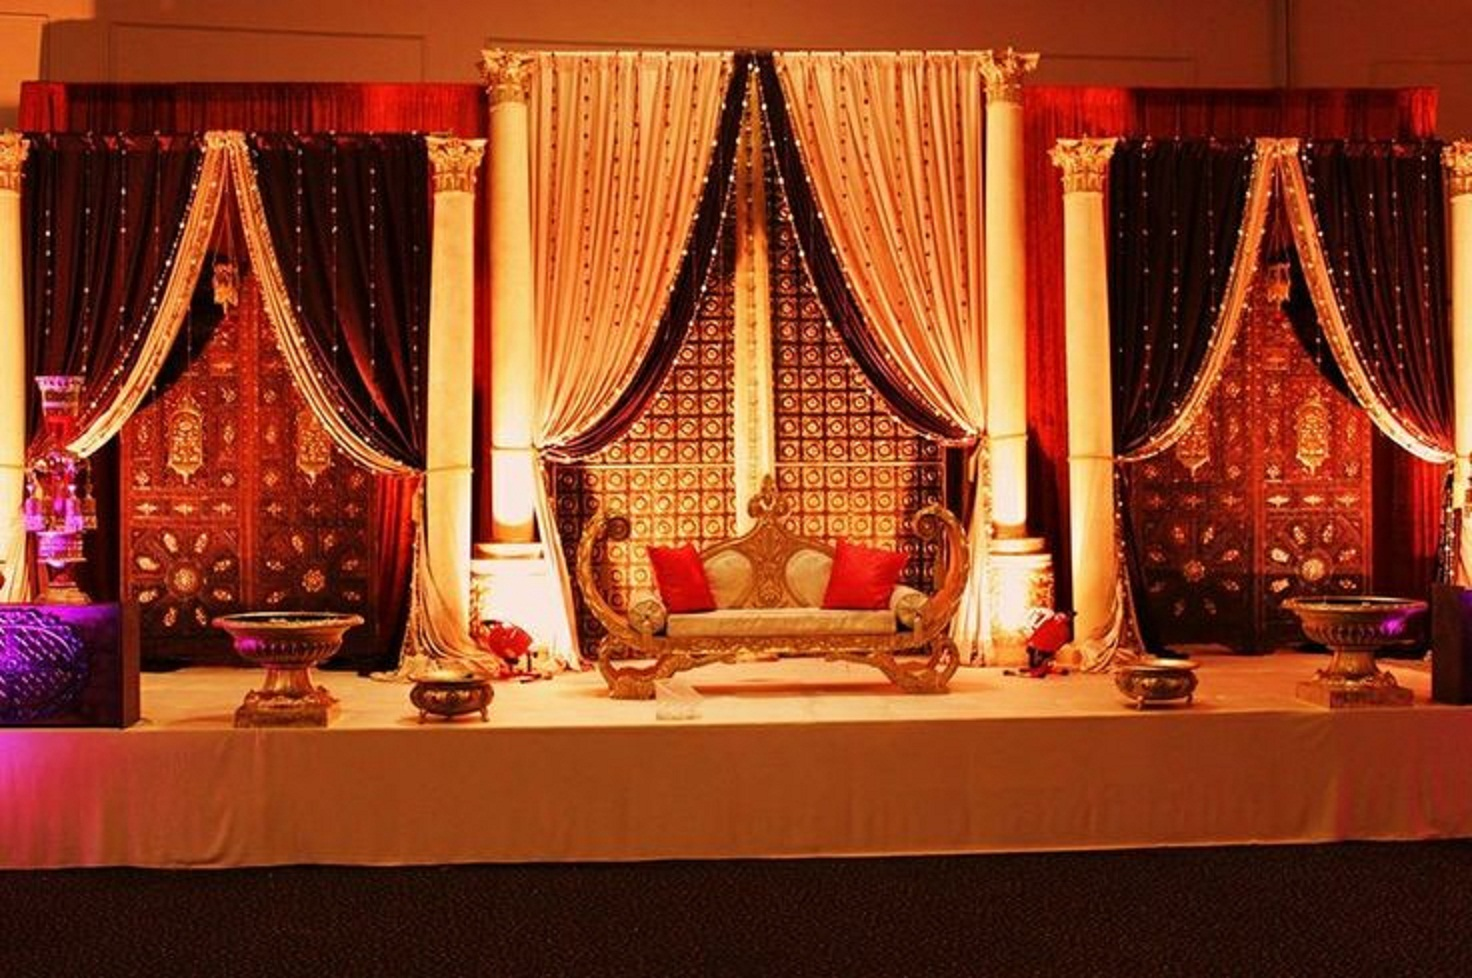 Best mehndi stage decoration ideas designs 2015 images hd for Decoration ideas